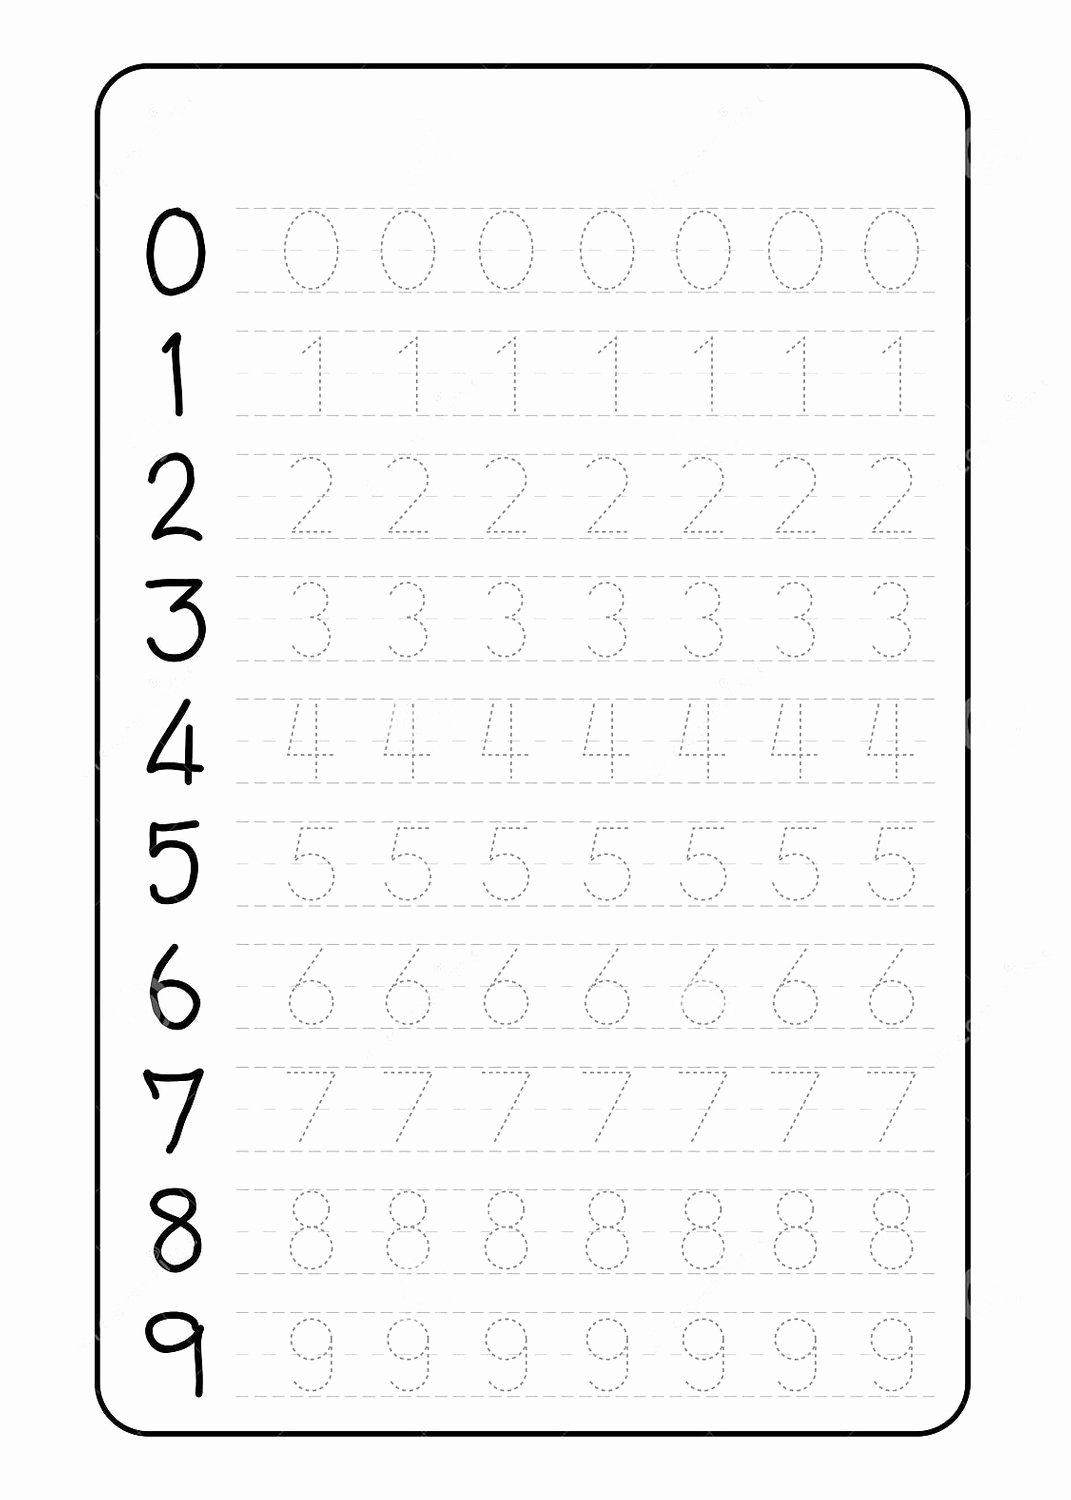 Number Tracing Worksheets for Kindergarten Inspirational Number Trace Worksheets Kindergarten Tracing for Preschool